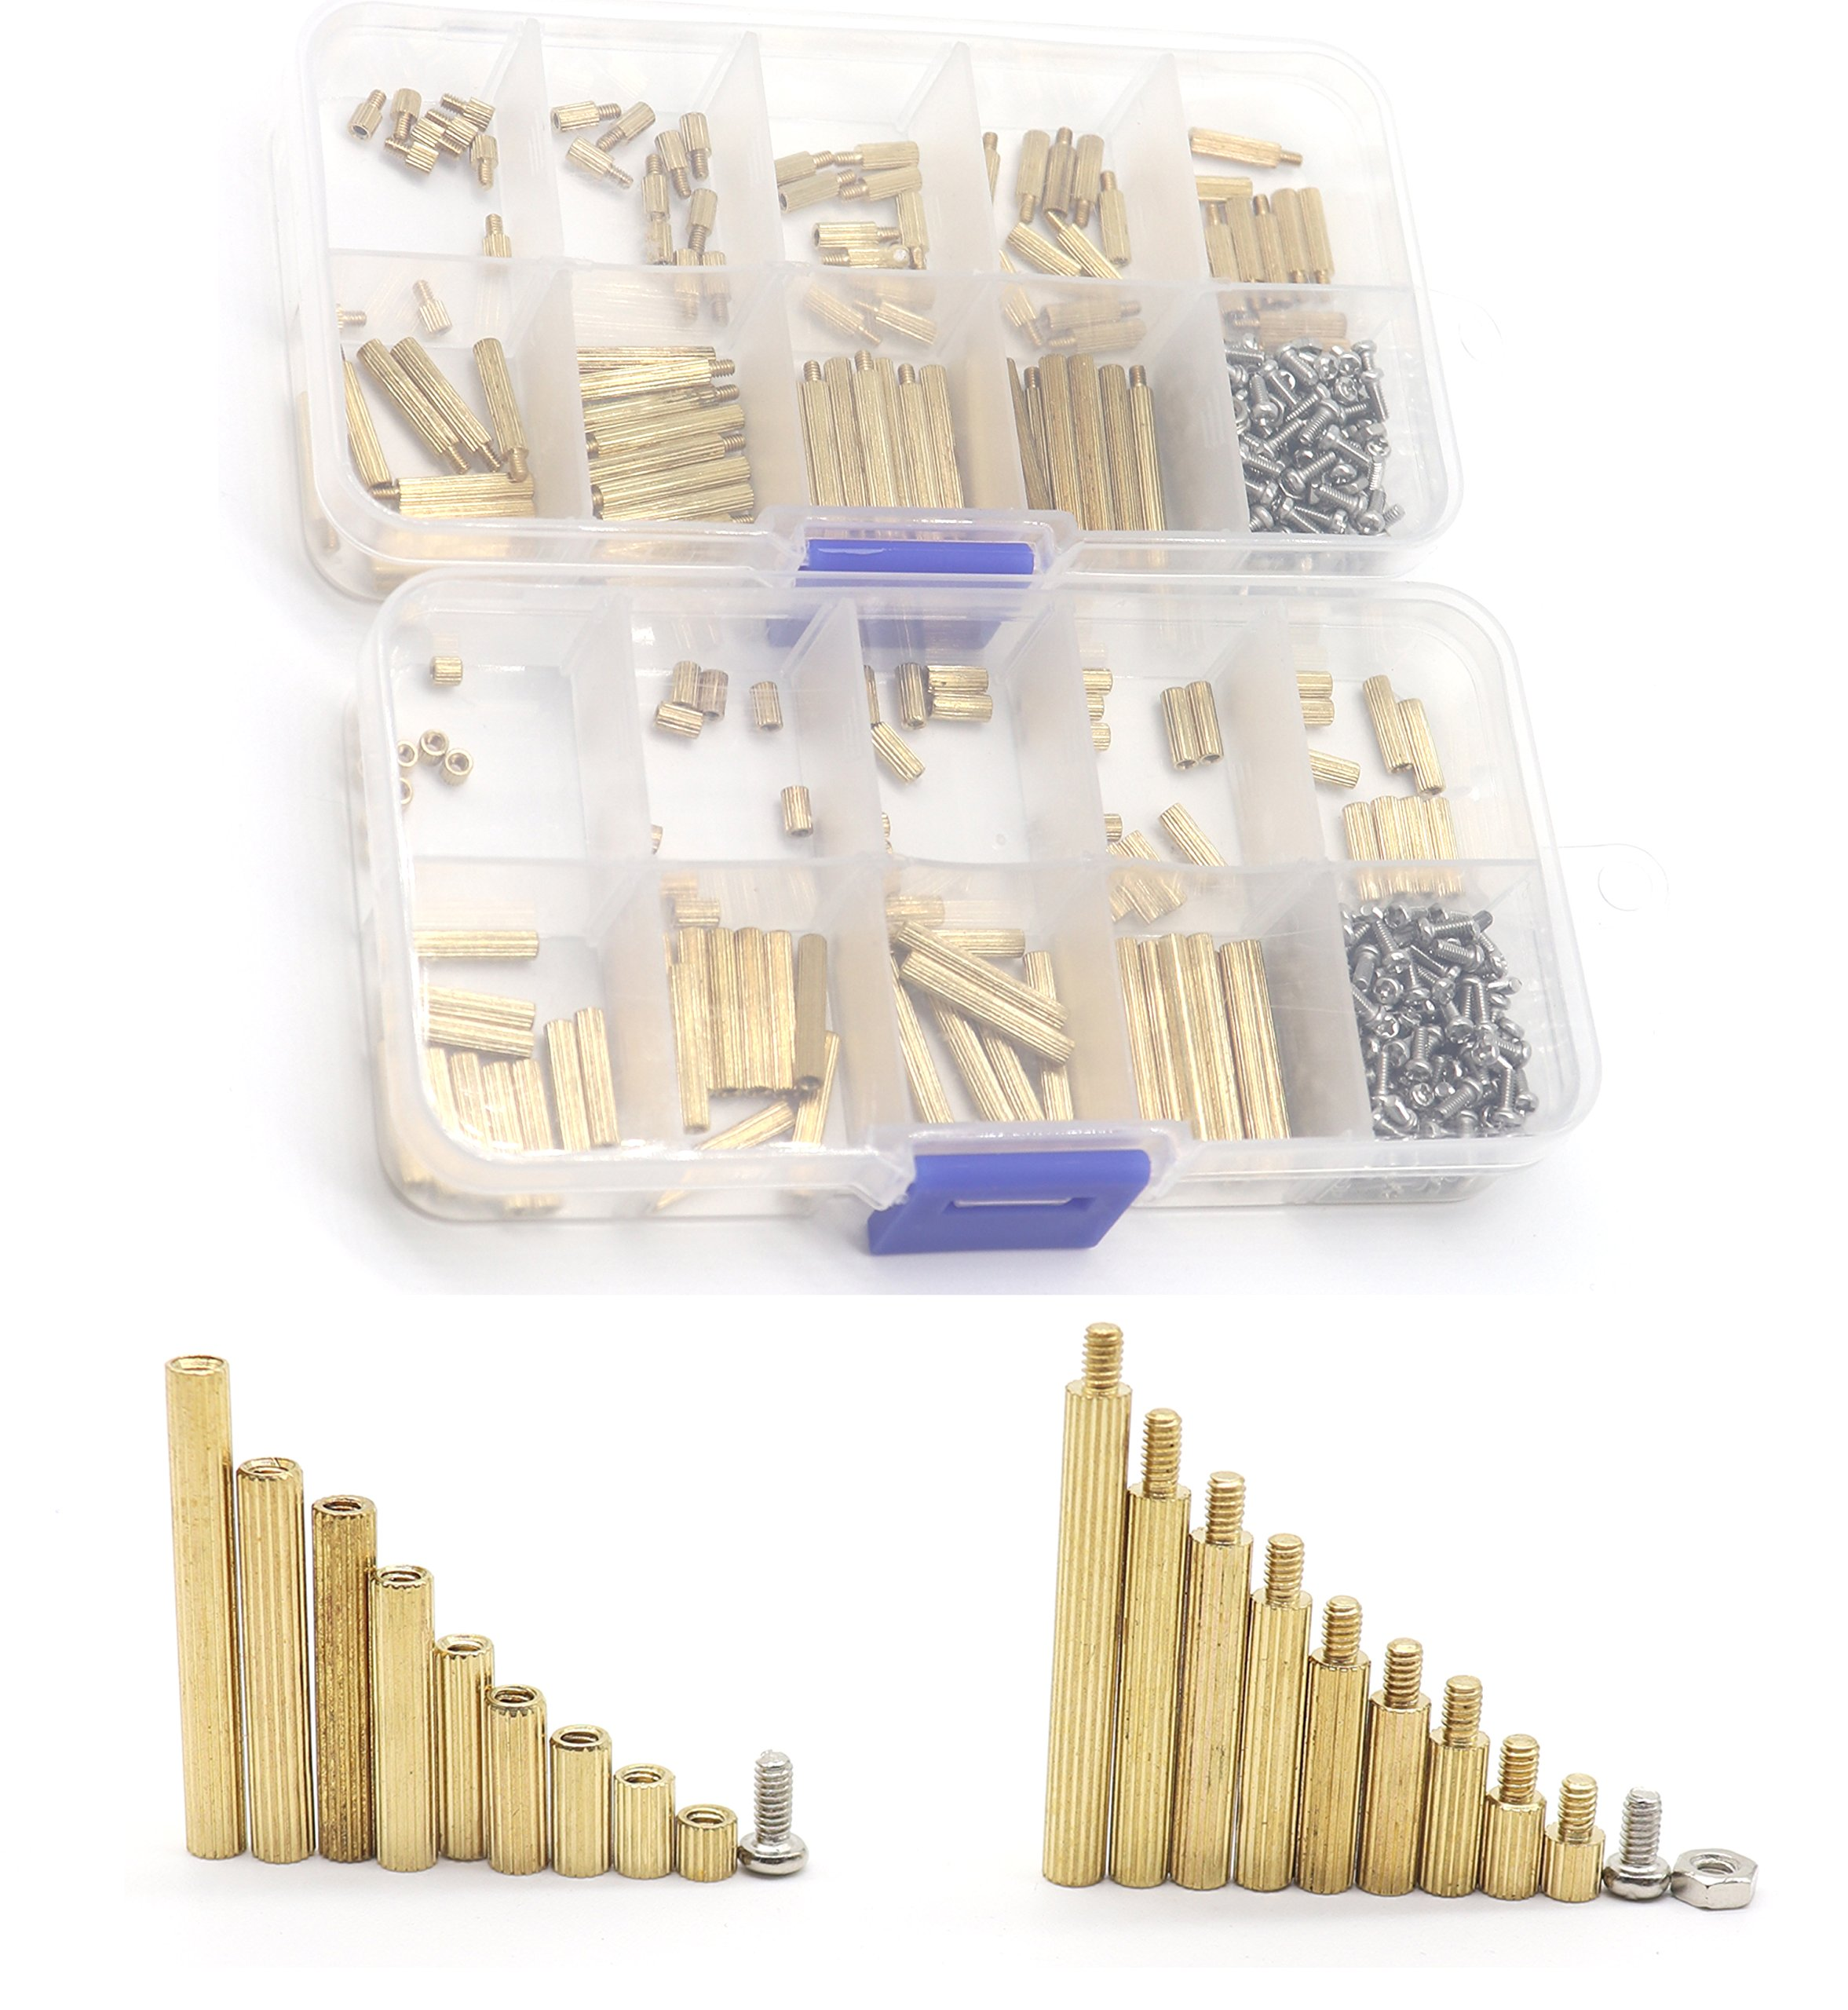 binifiMux 540Pcs M2 Copper Brass Round Standoff Spacers Screw Nuts Assortment Kit,Male Female, 304 Stainless Steel Machine Screws Nuts